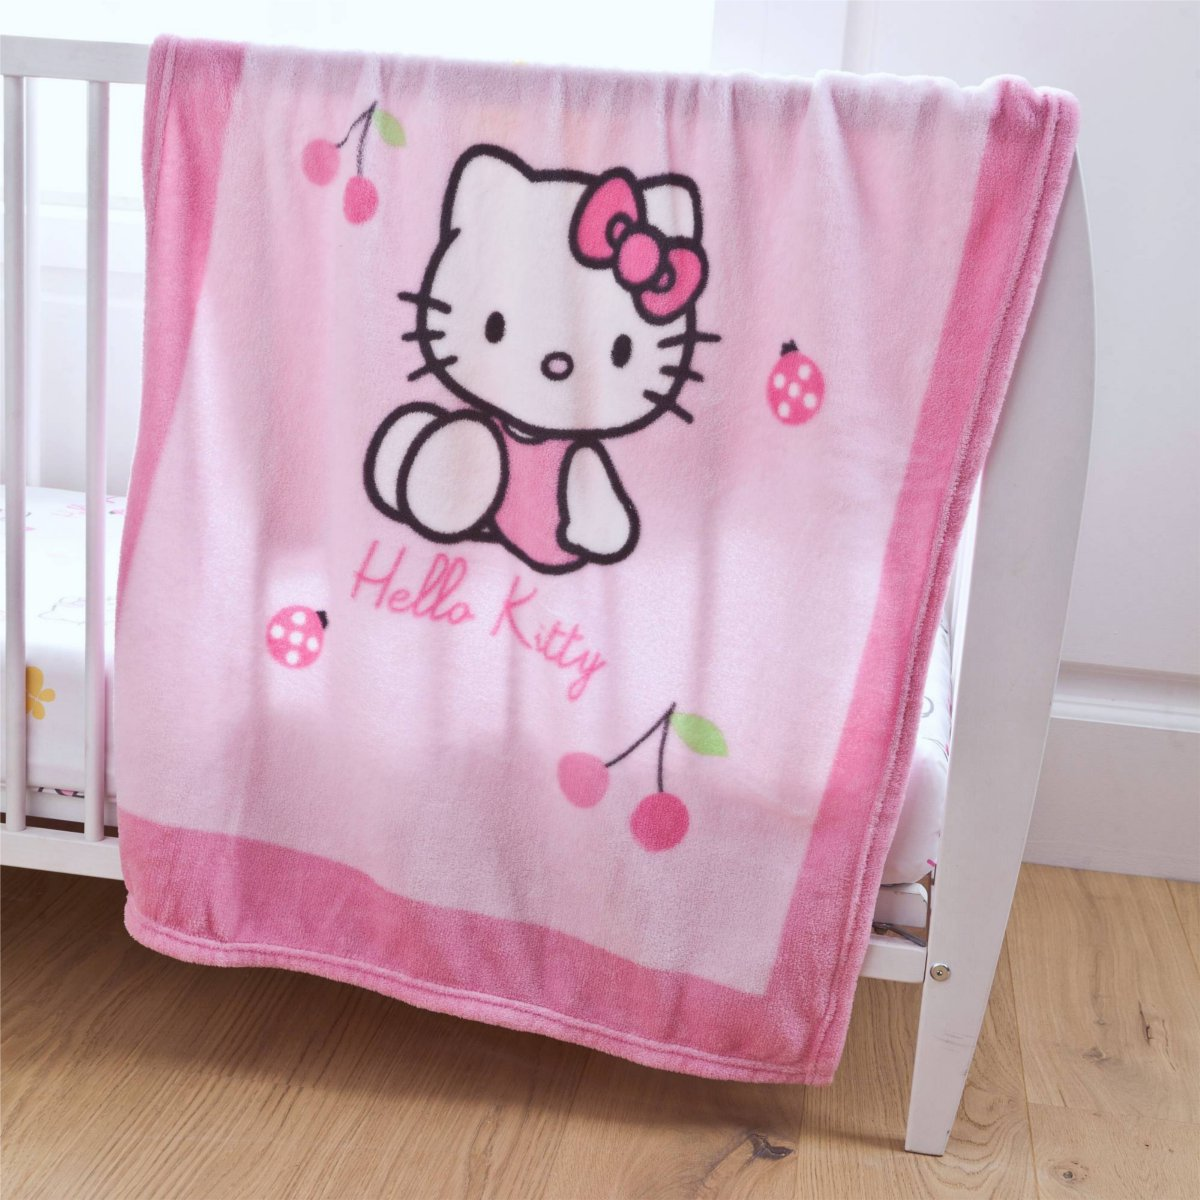 vetements cuir linge de lit bebe hello kitty. Black Bedroom Furniture Sets. Home Design Ideas